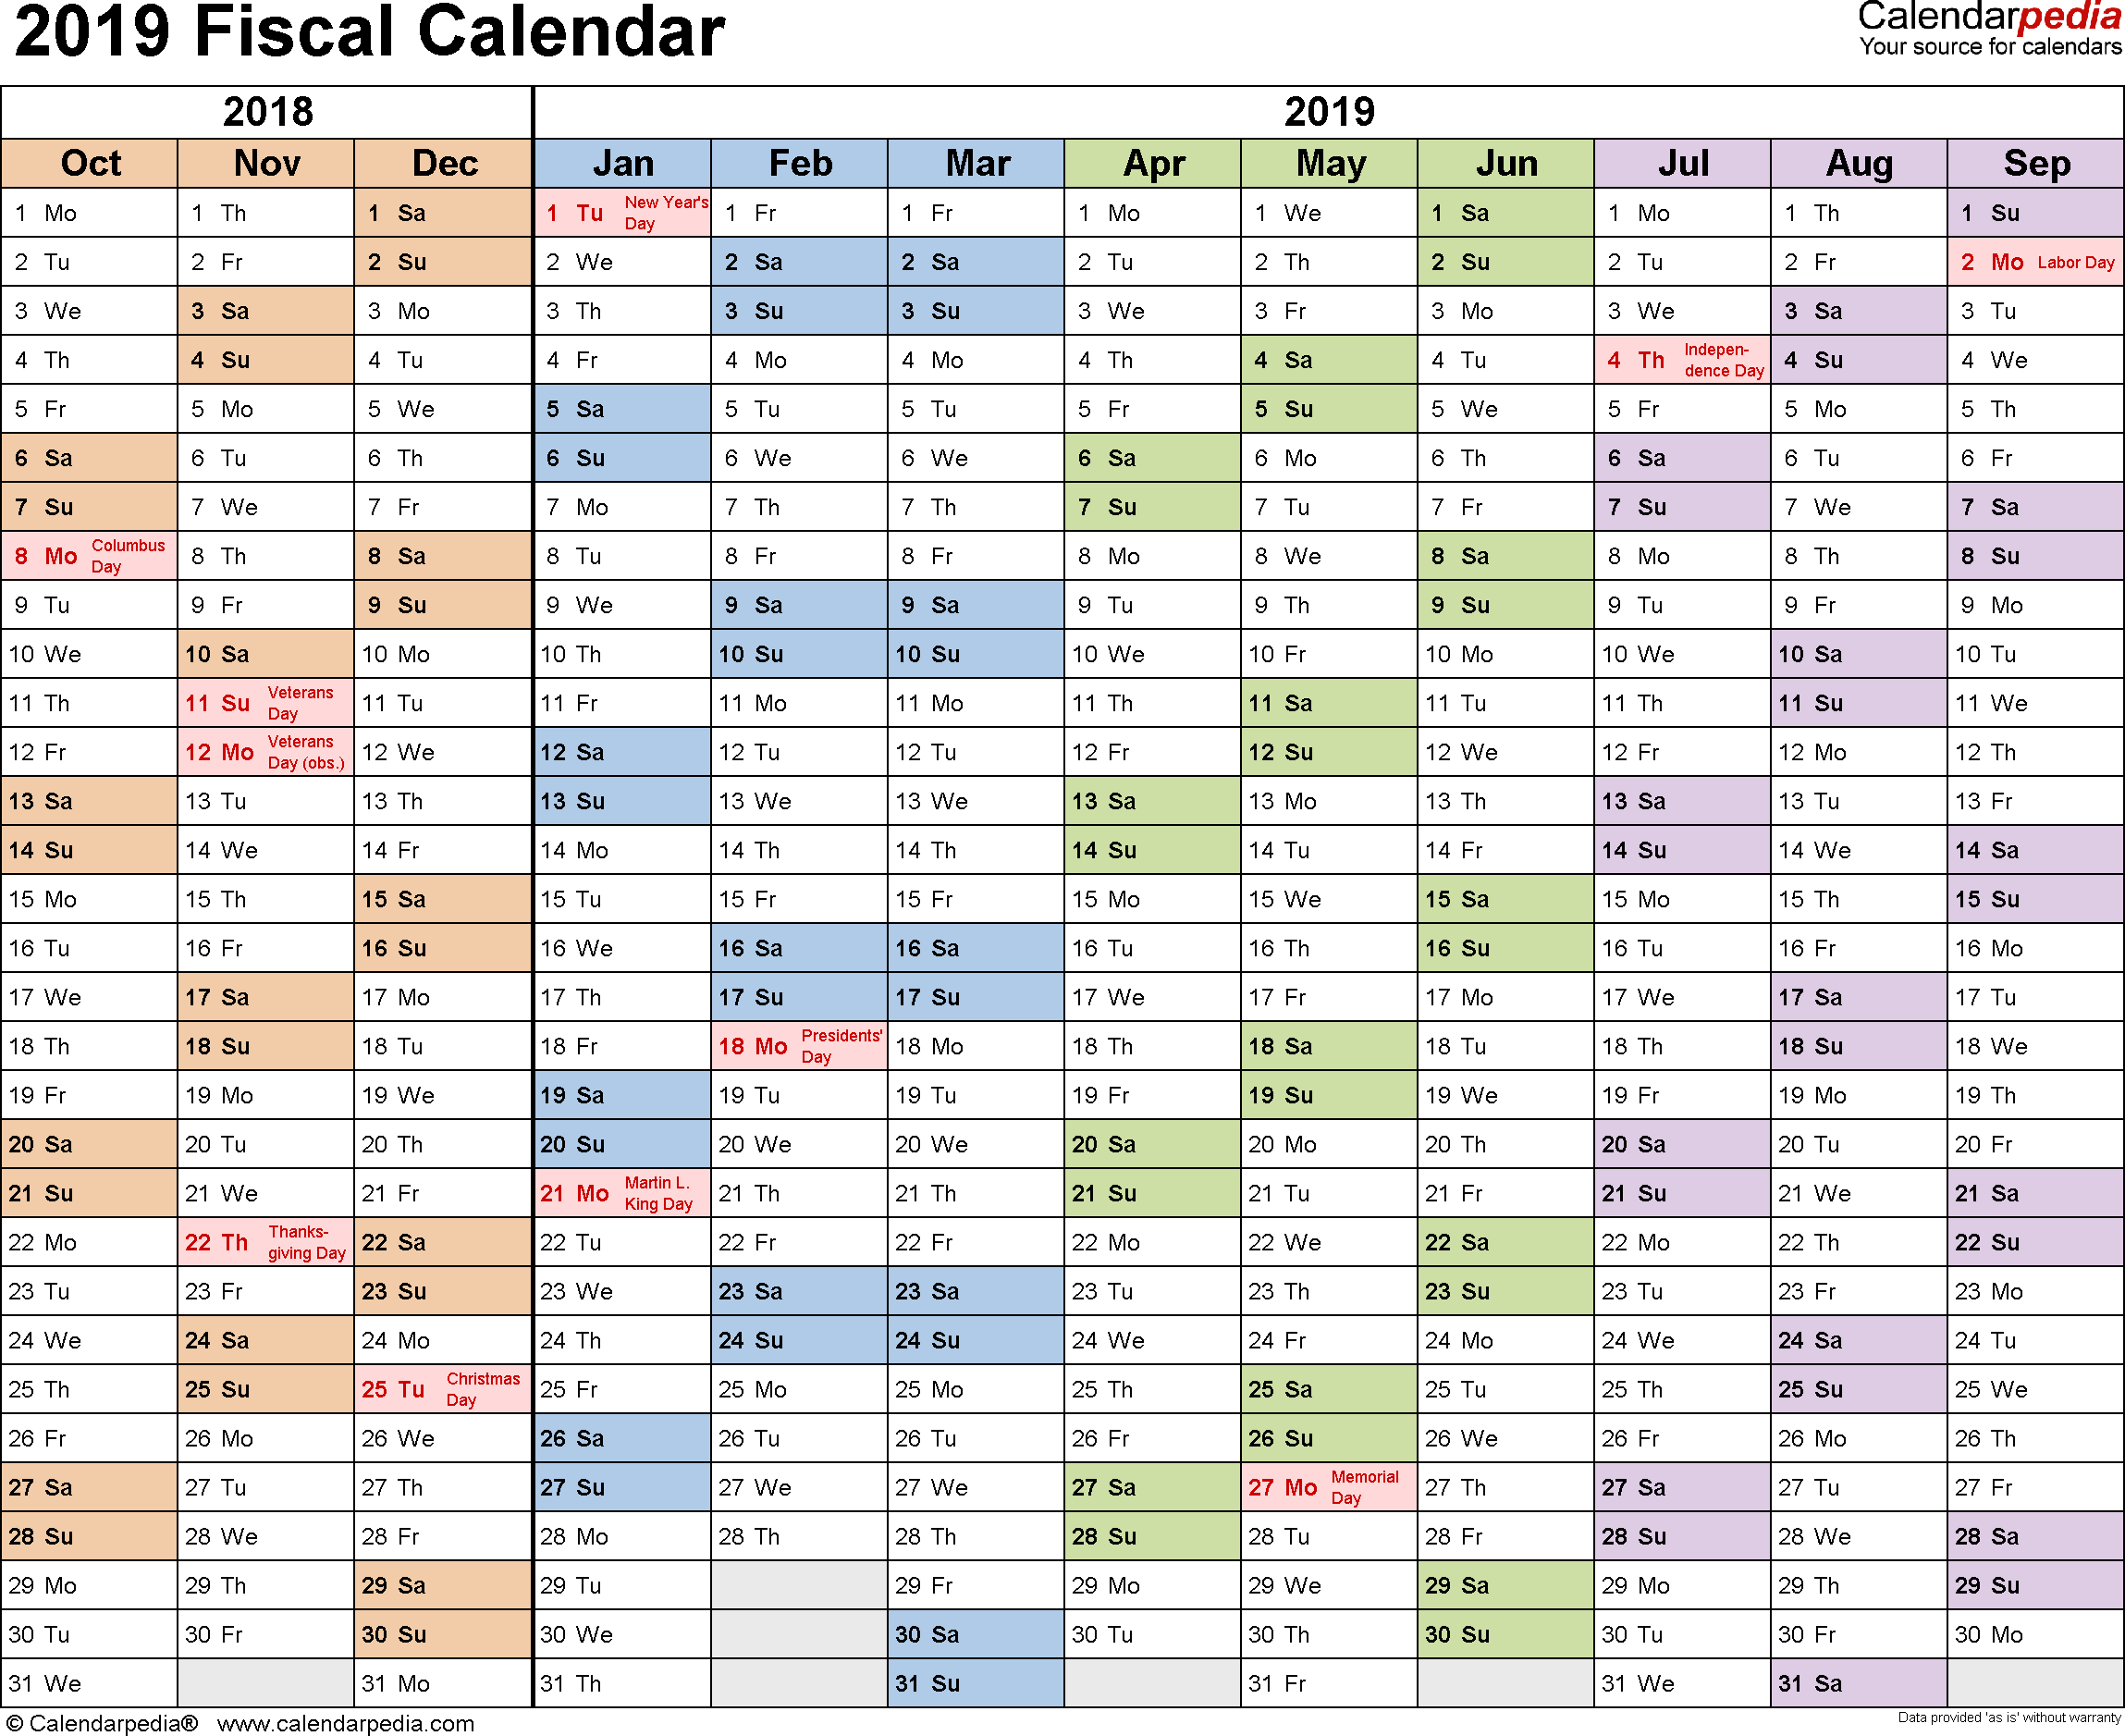 Apple Fiscal Year 2019 Calendar With Calendars As Free Printable Word Templates